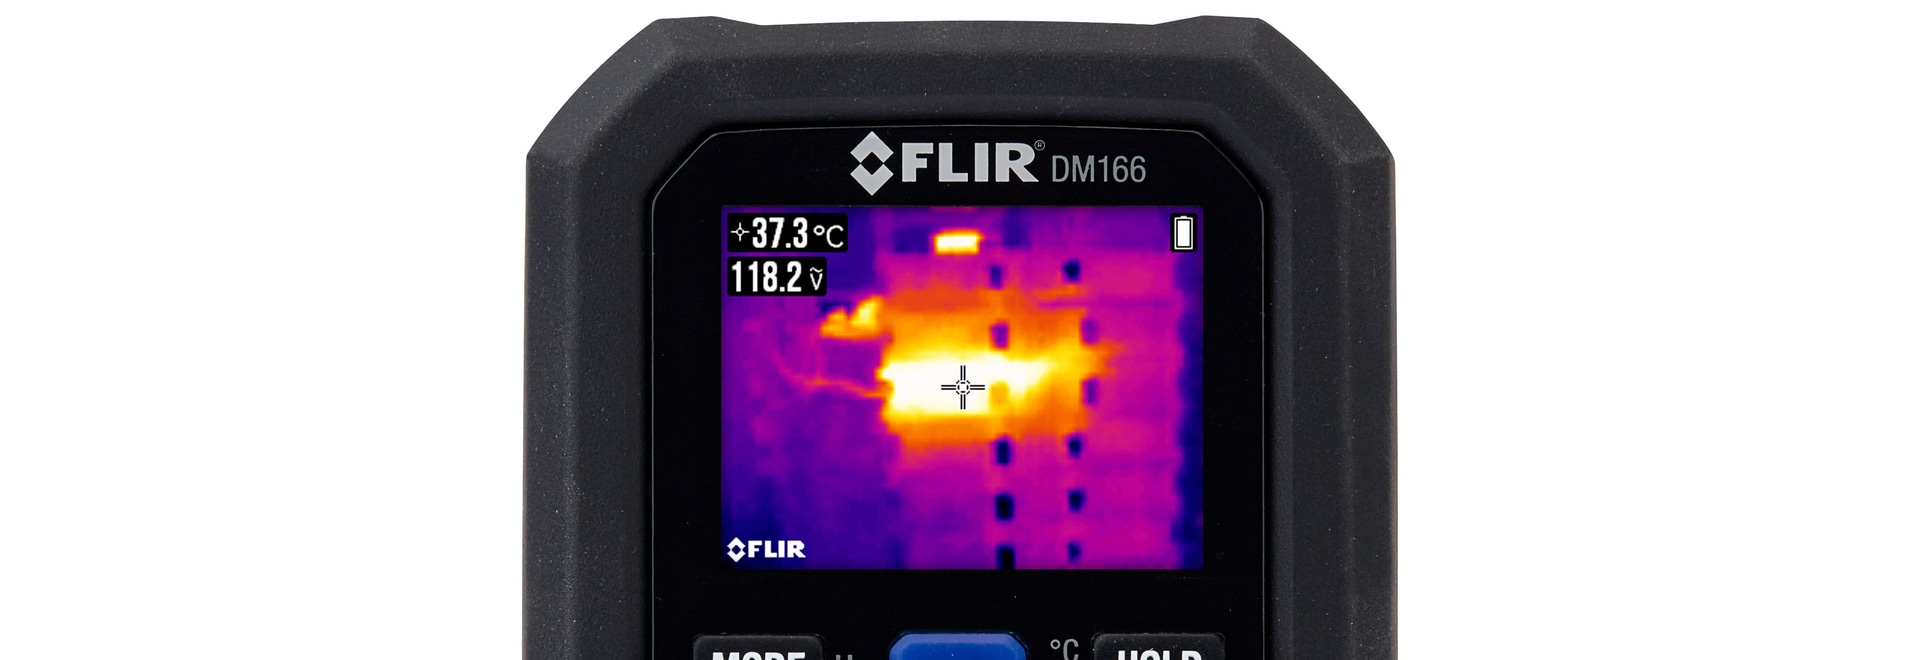 FLIR DM166 thermal imaging multimeter with Infrared Guided Measurement